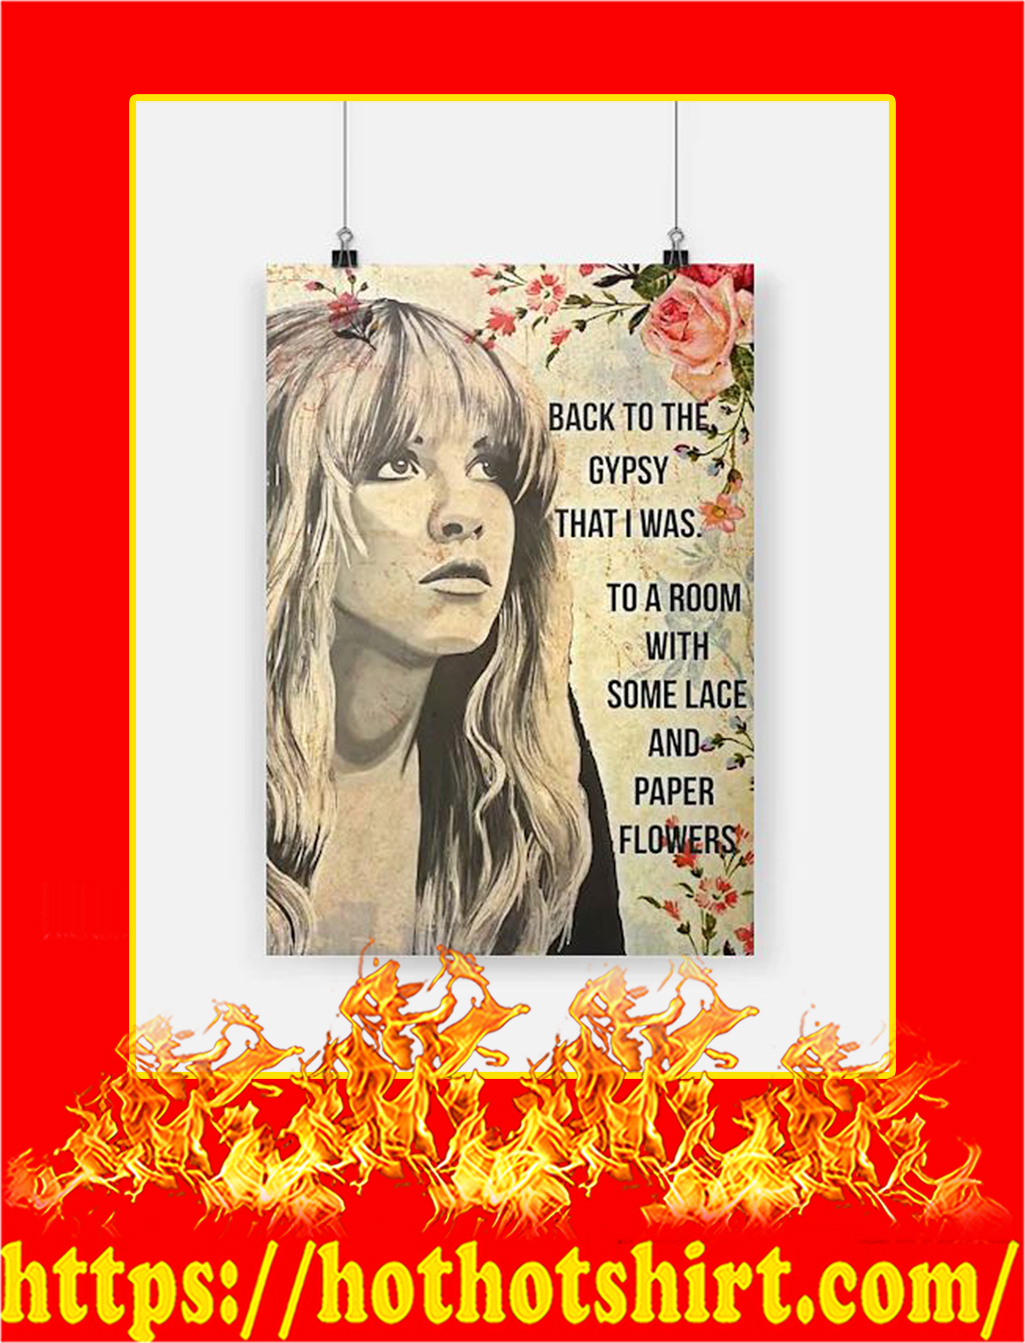 Stevie Nicks Back To The Gypsy That I Was To A Room With Some Lace And Paper Flowers Poster - A4